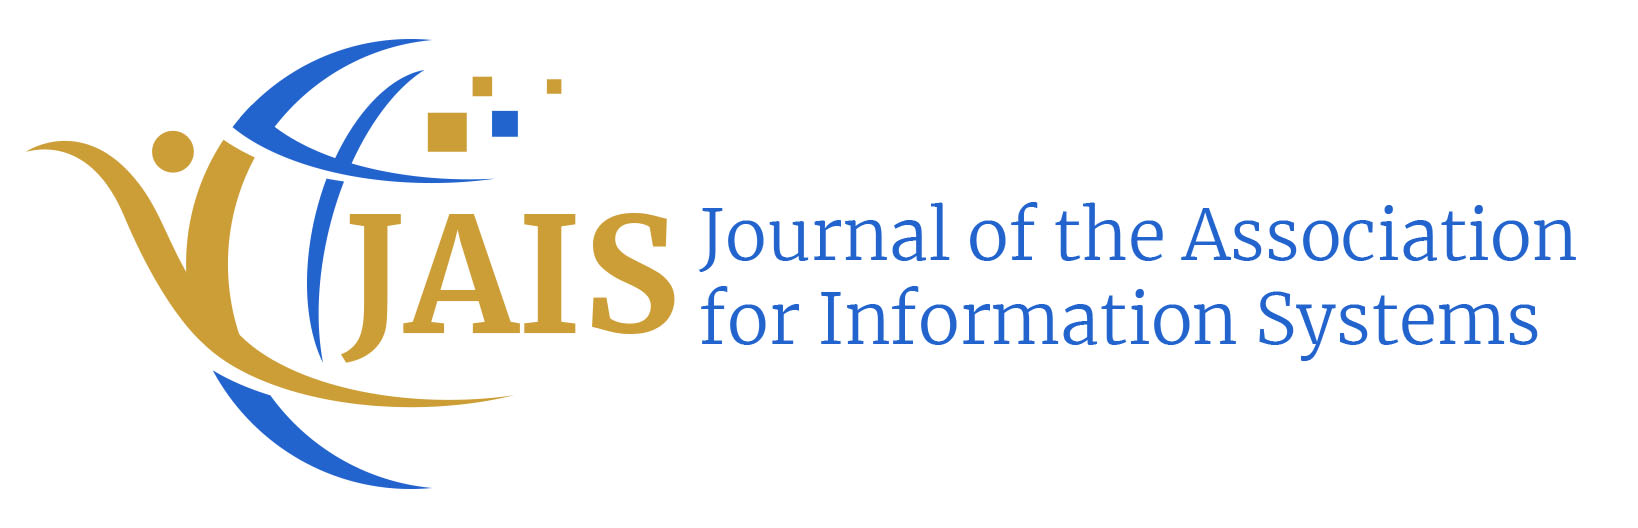 Journal of the Association for Information Systems